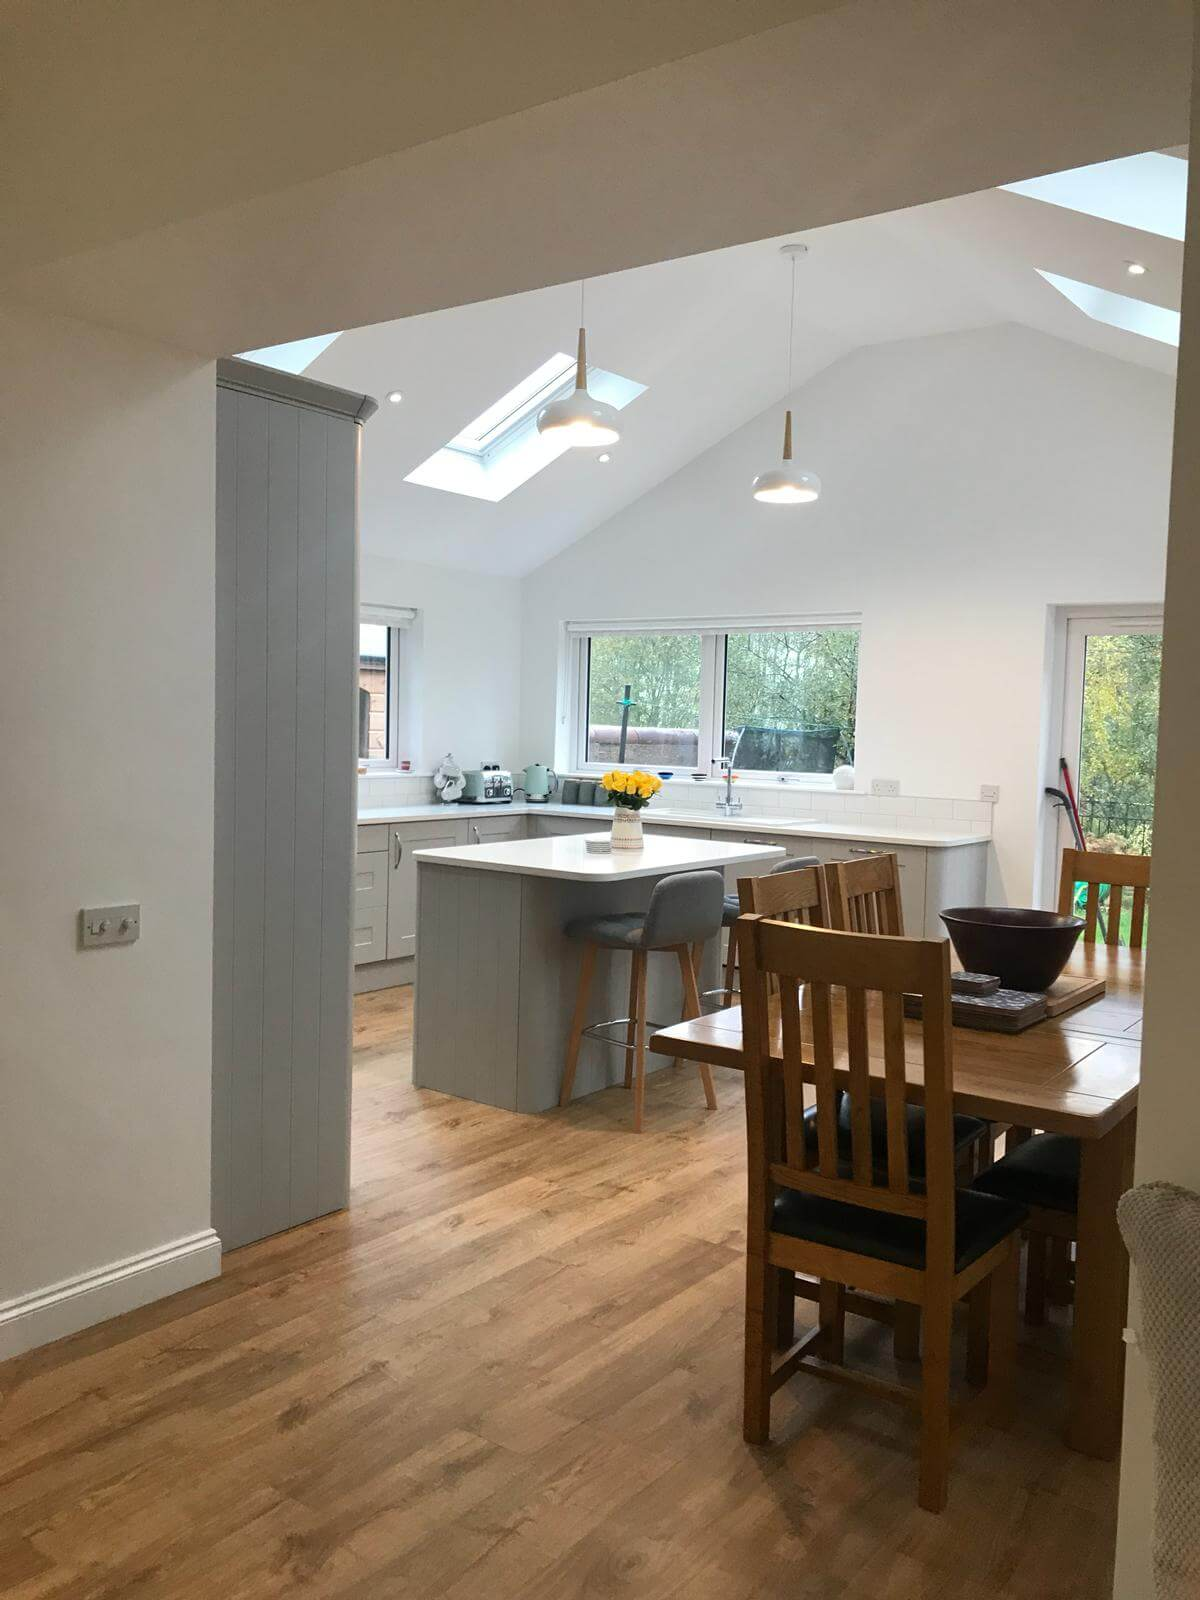 Kitchen Extensions With Velux Windows Cdj Watson Builders Based In Dunfermline Fife With 50 Years And